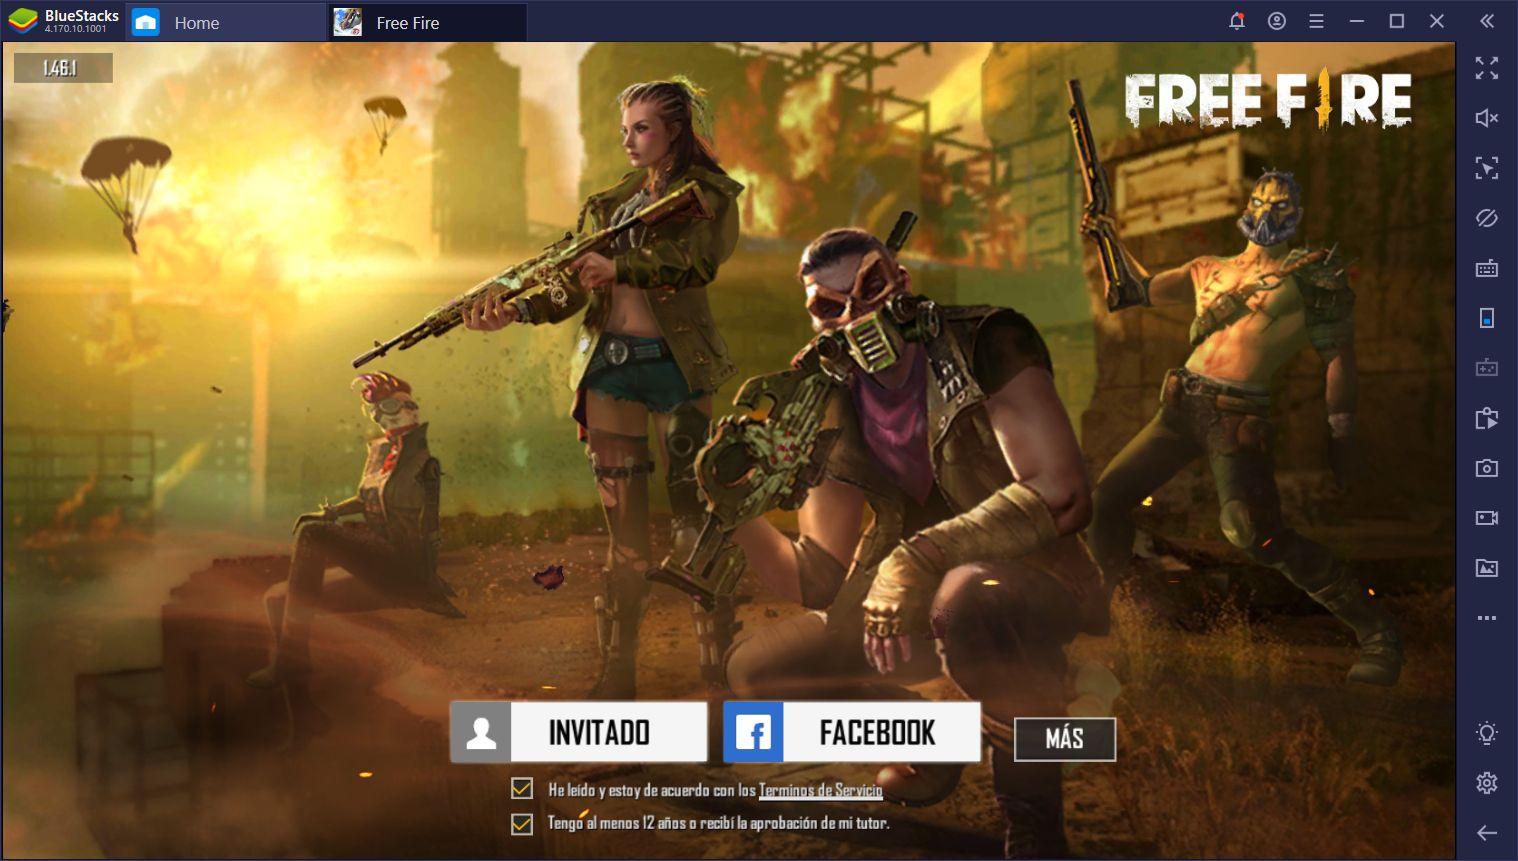 Garena Free Fire Feb 2020 Patch - Uninterrupted Booyahs with Smart Controls only on BlueStacks